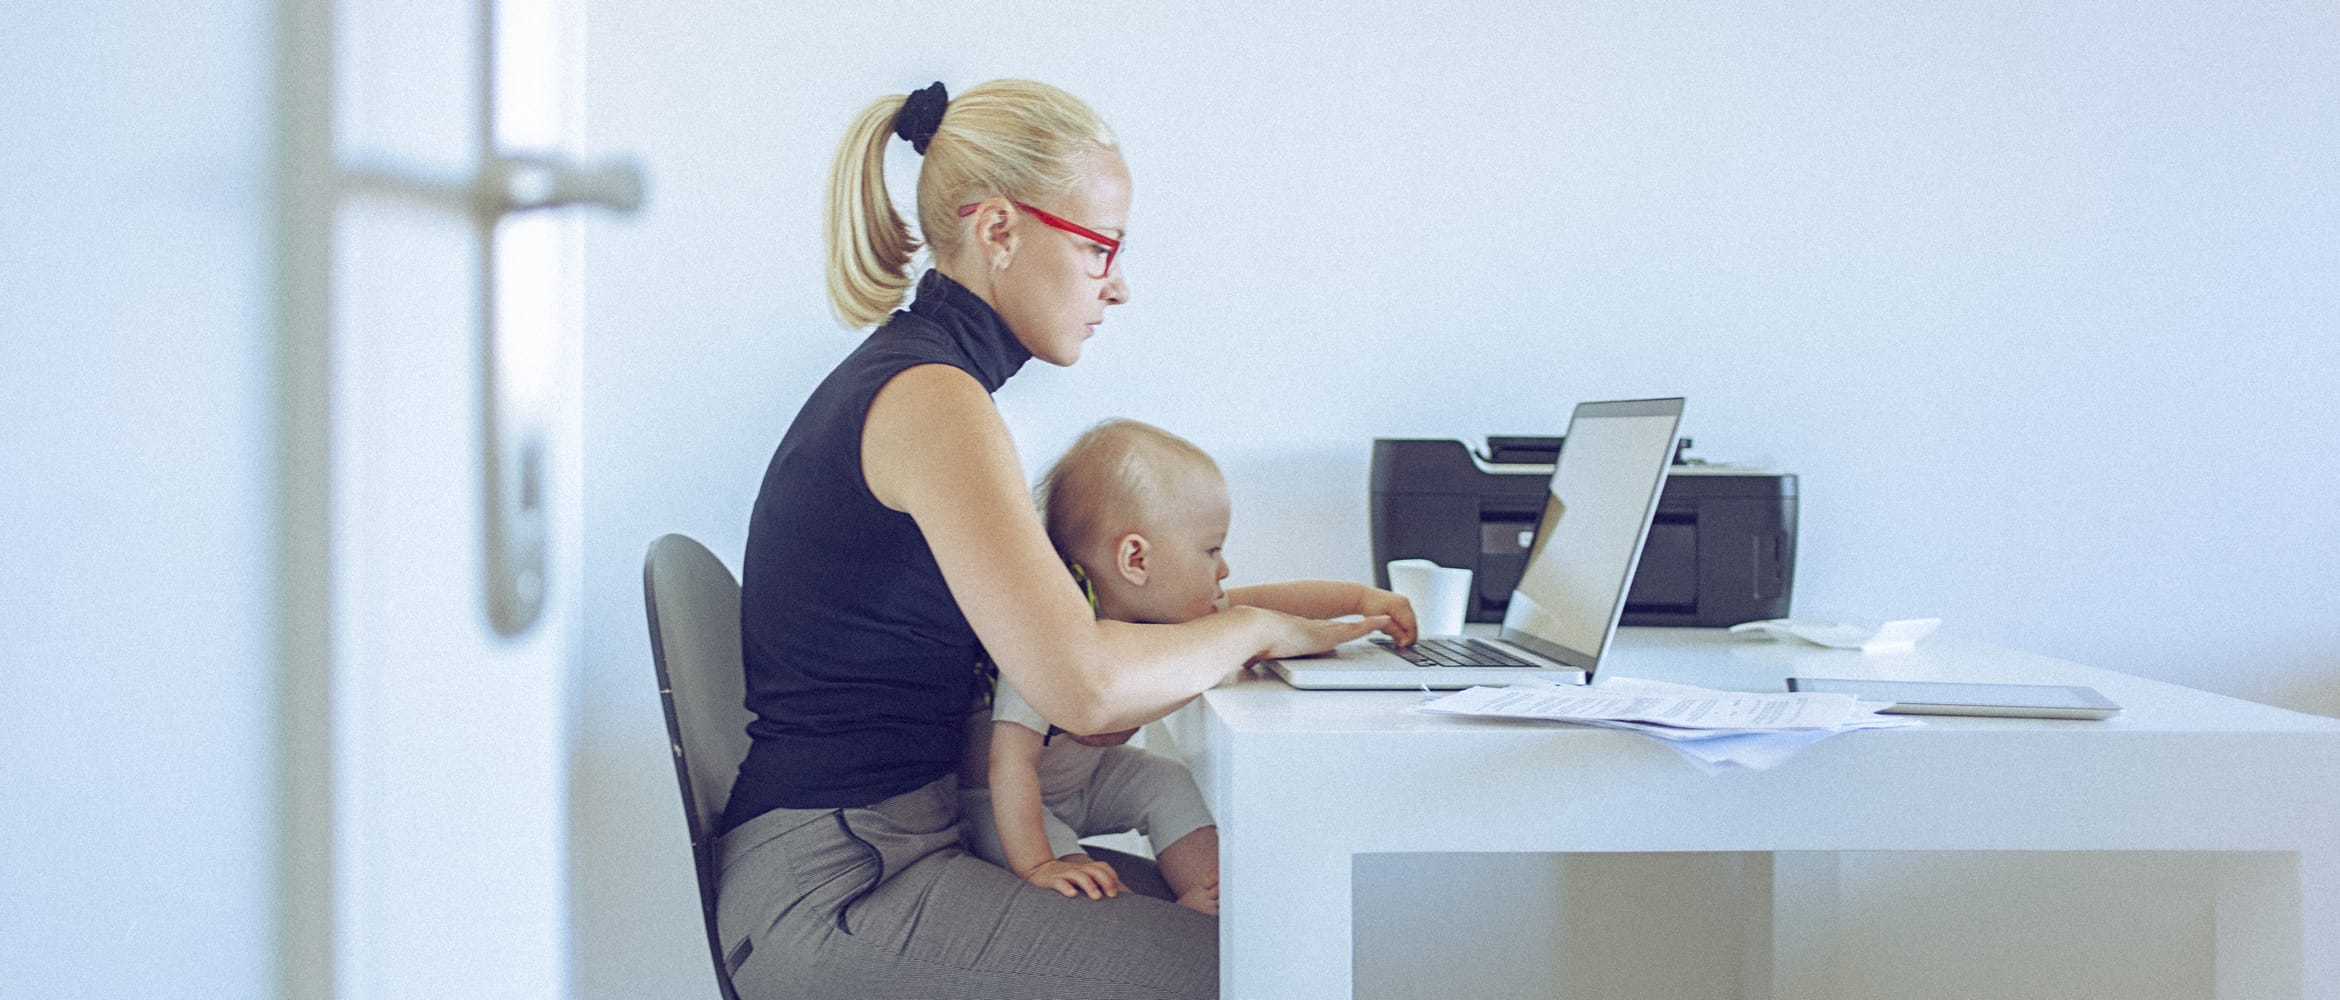 woman working from home with baby on lap